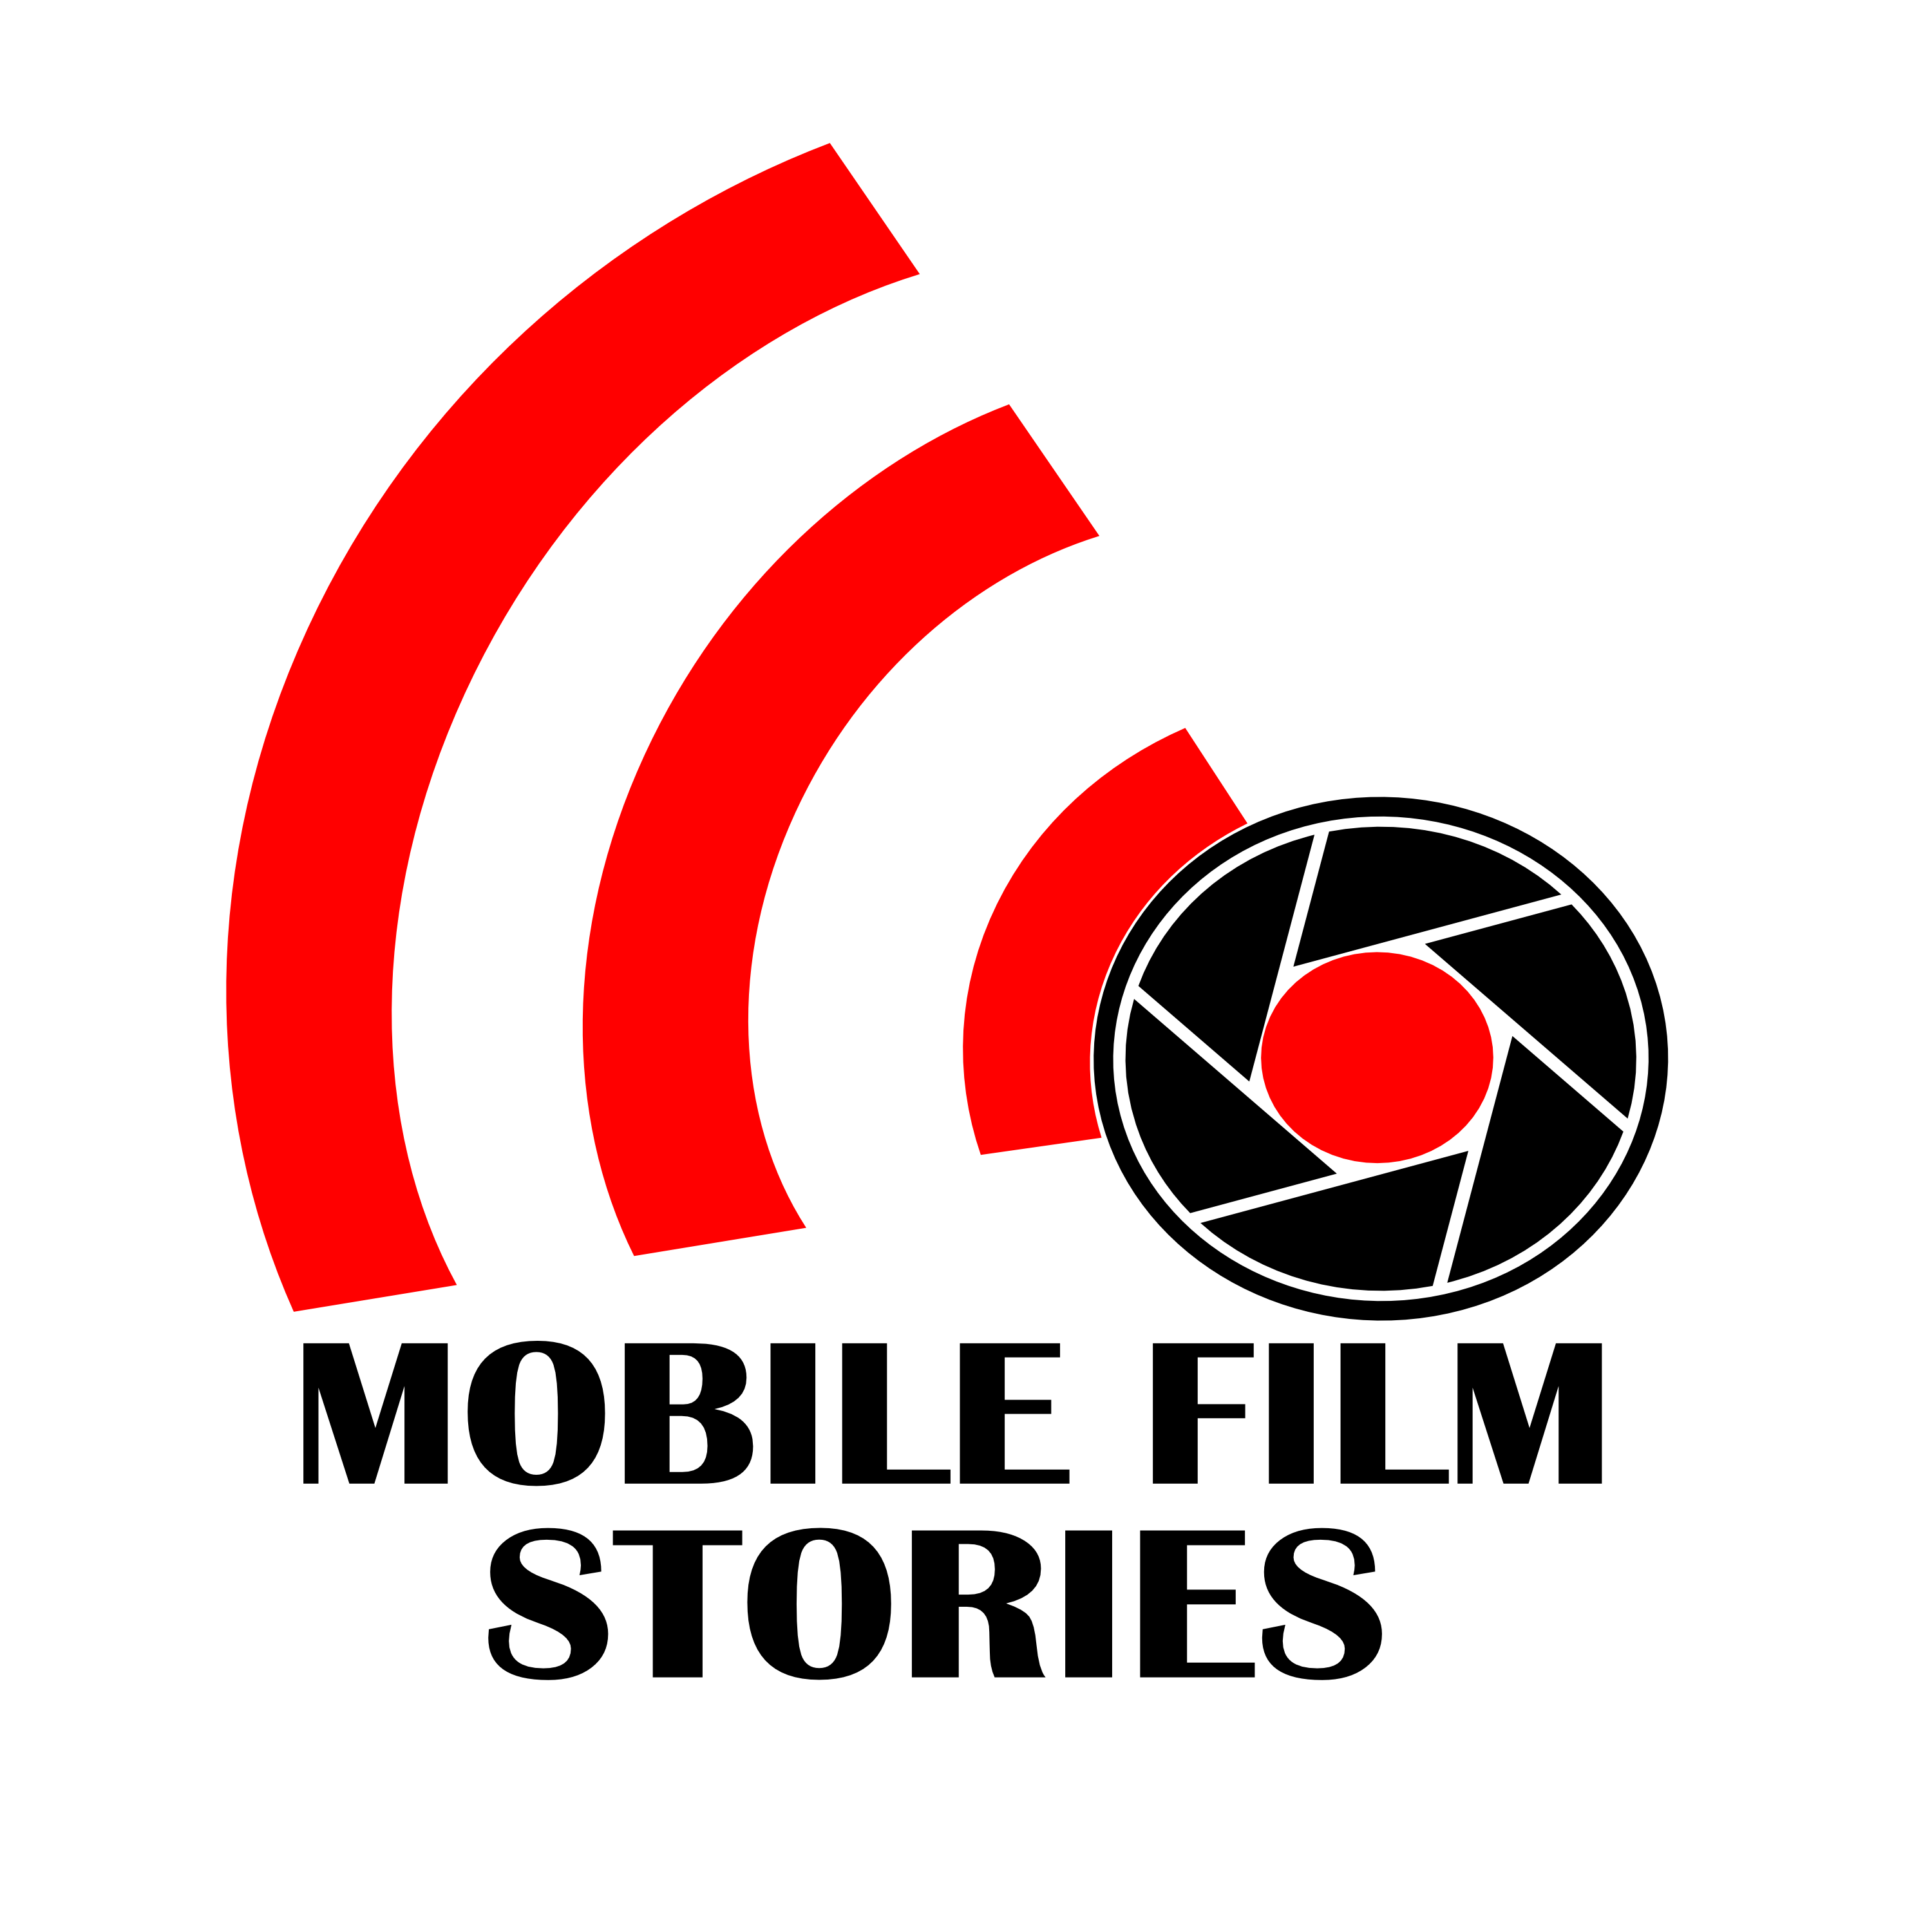 Mobile Film Stories